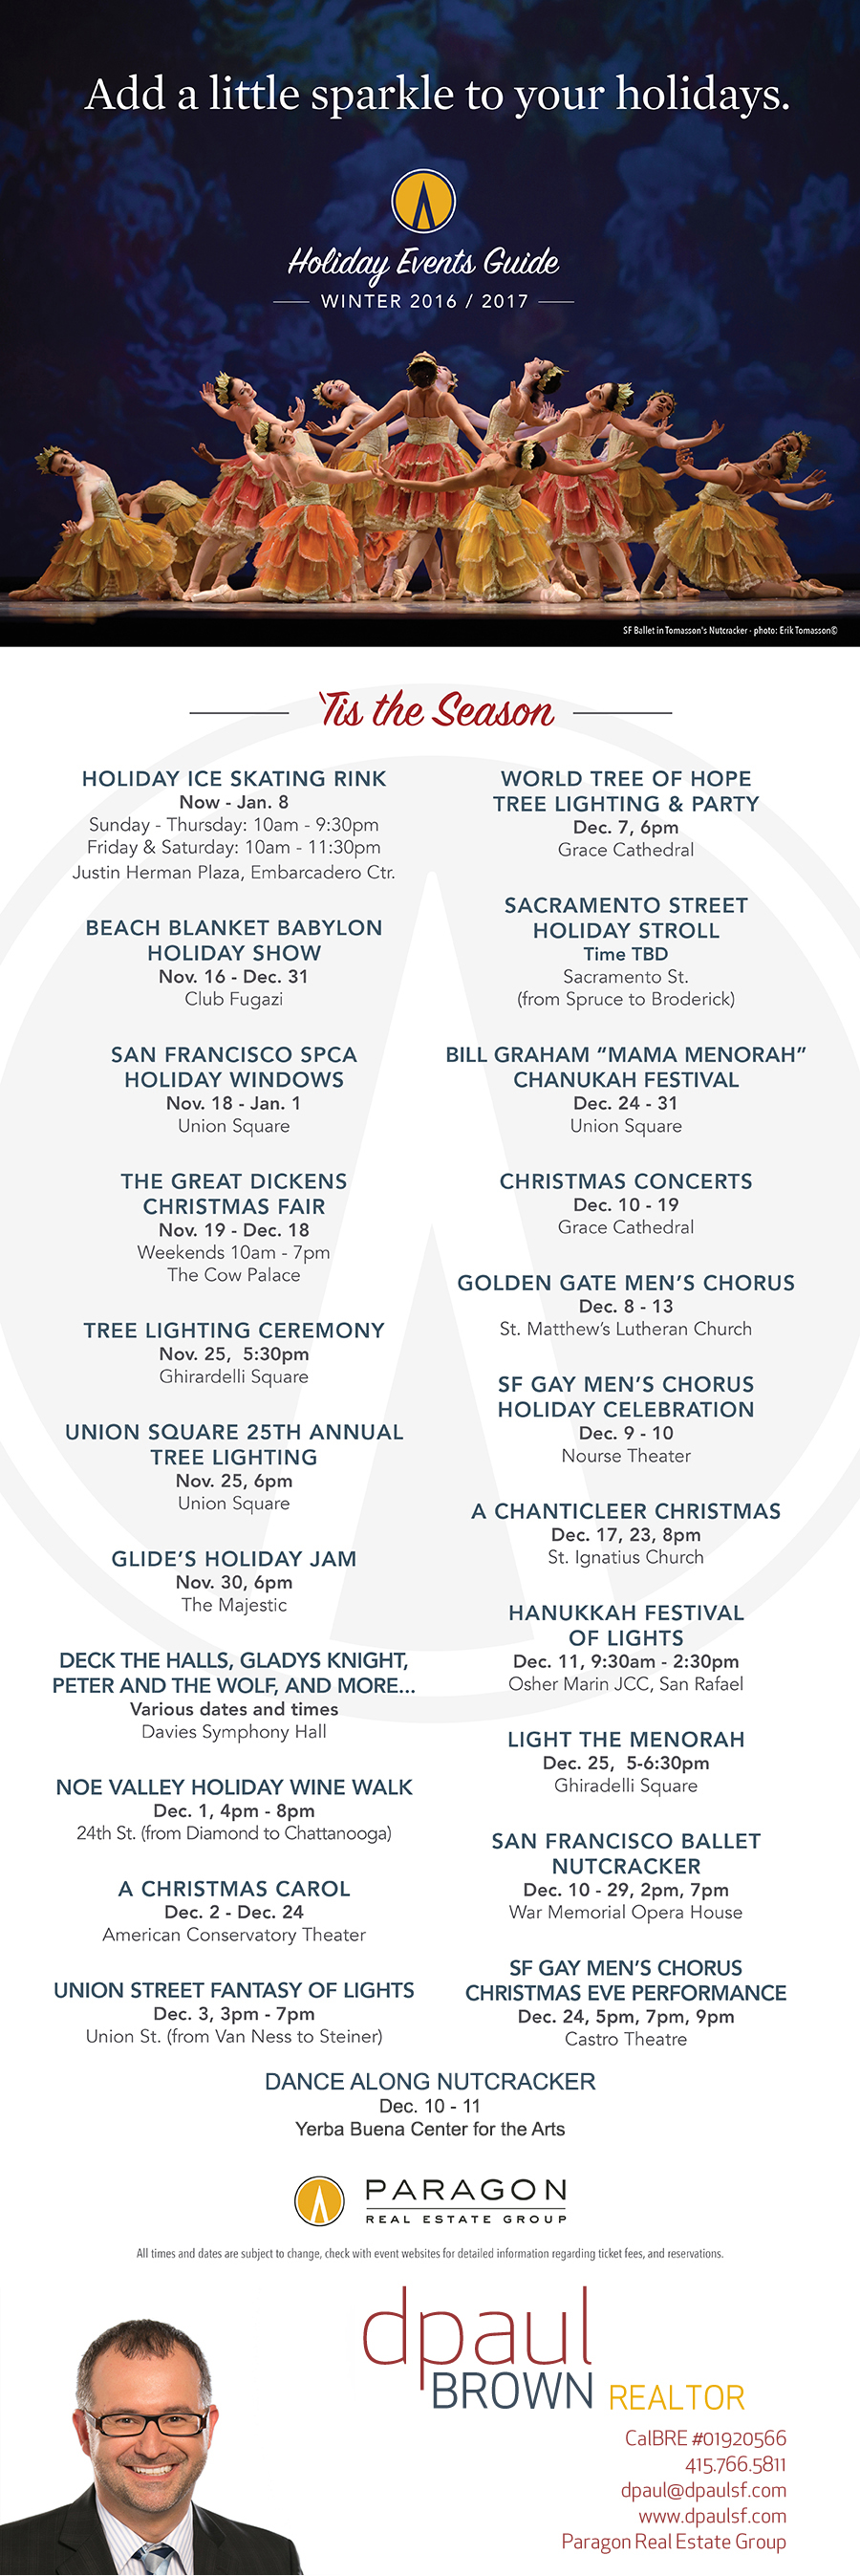 San Francisco 2016 Holiday Events Calendar